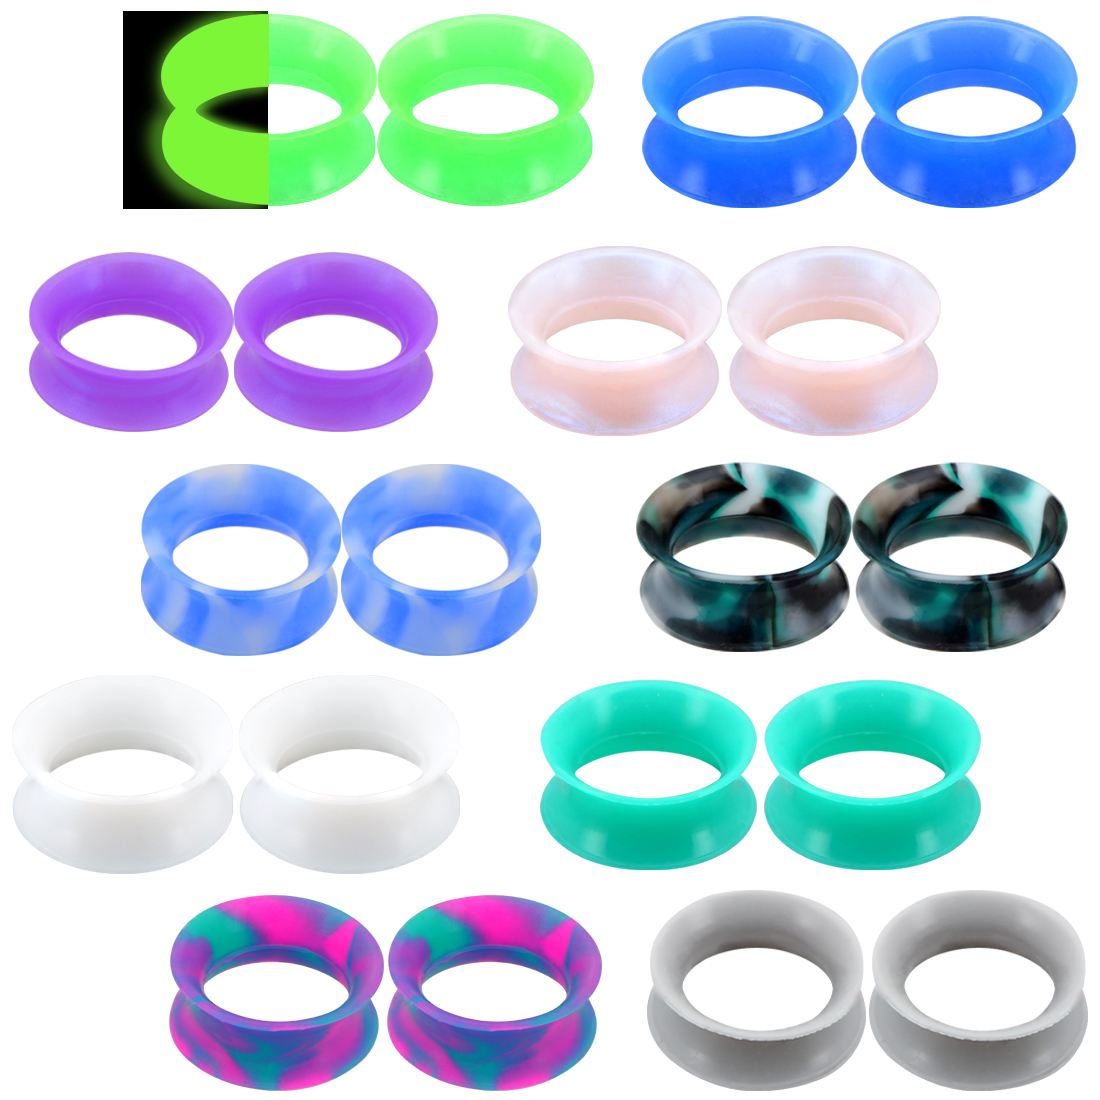 Body Punk 20PCS Soft Silicone Ear Gauges Flesh Tunnels Plugs Stretchers Expander Double Flared Flesh Tunnel Ear Piercing Jewelry